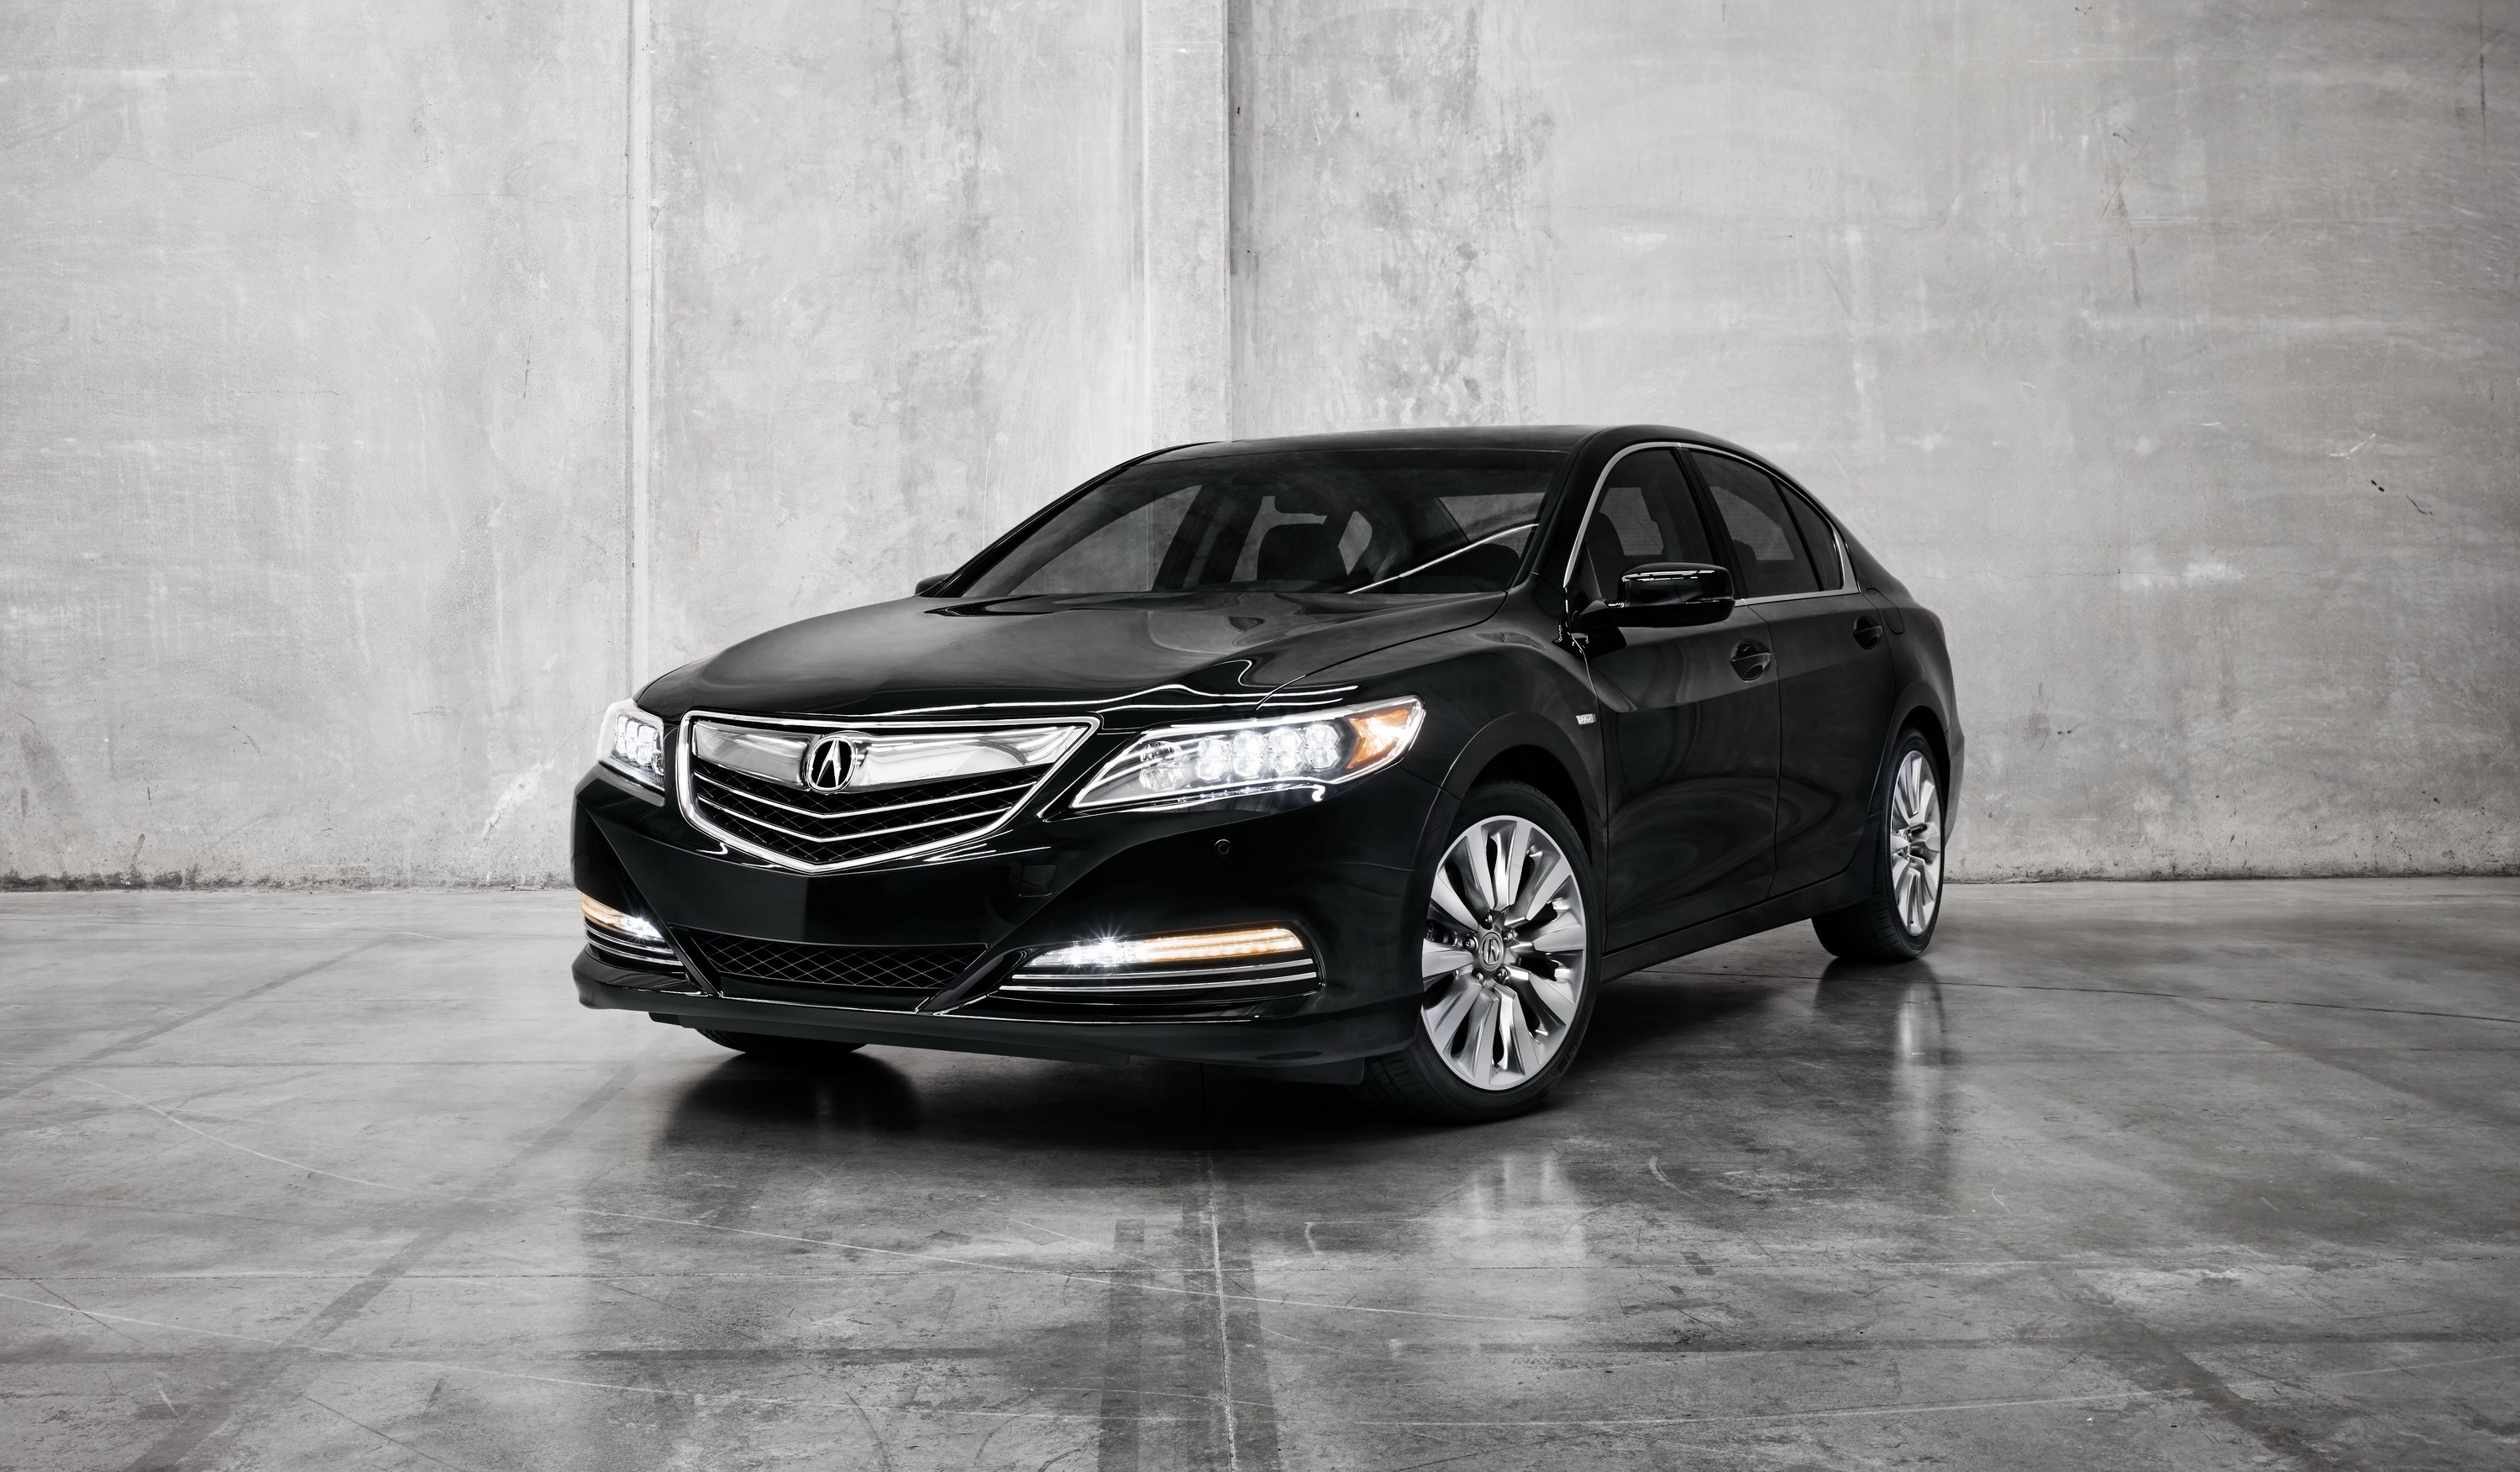 2013 acura rlx sport hybrid sh awd review gallery top speed. Black Bedroom Furniture Sets. Home Design Ideas